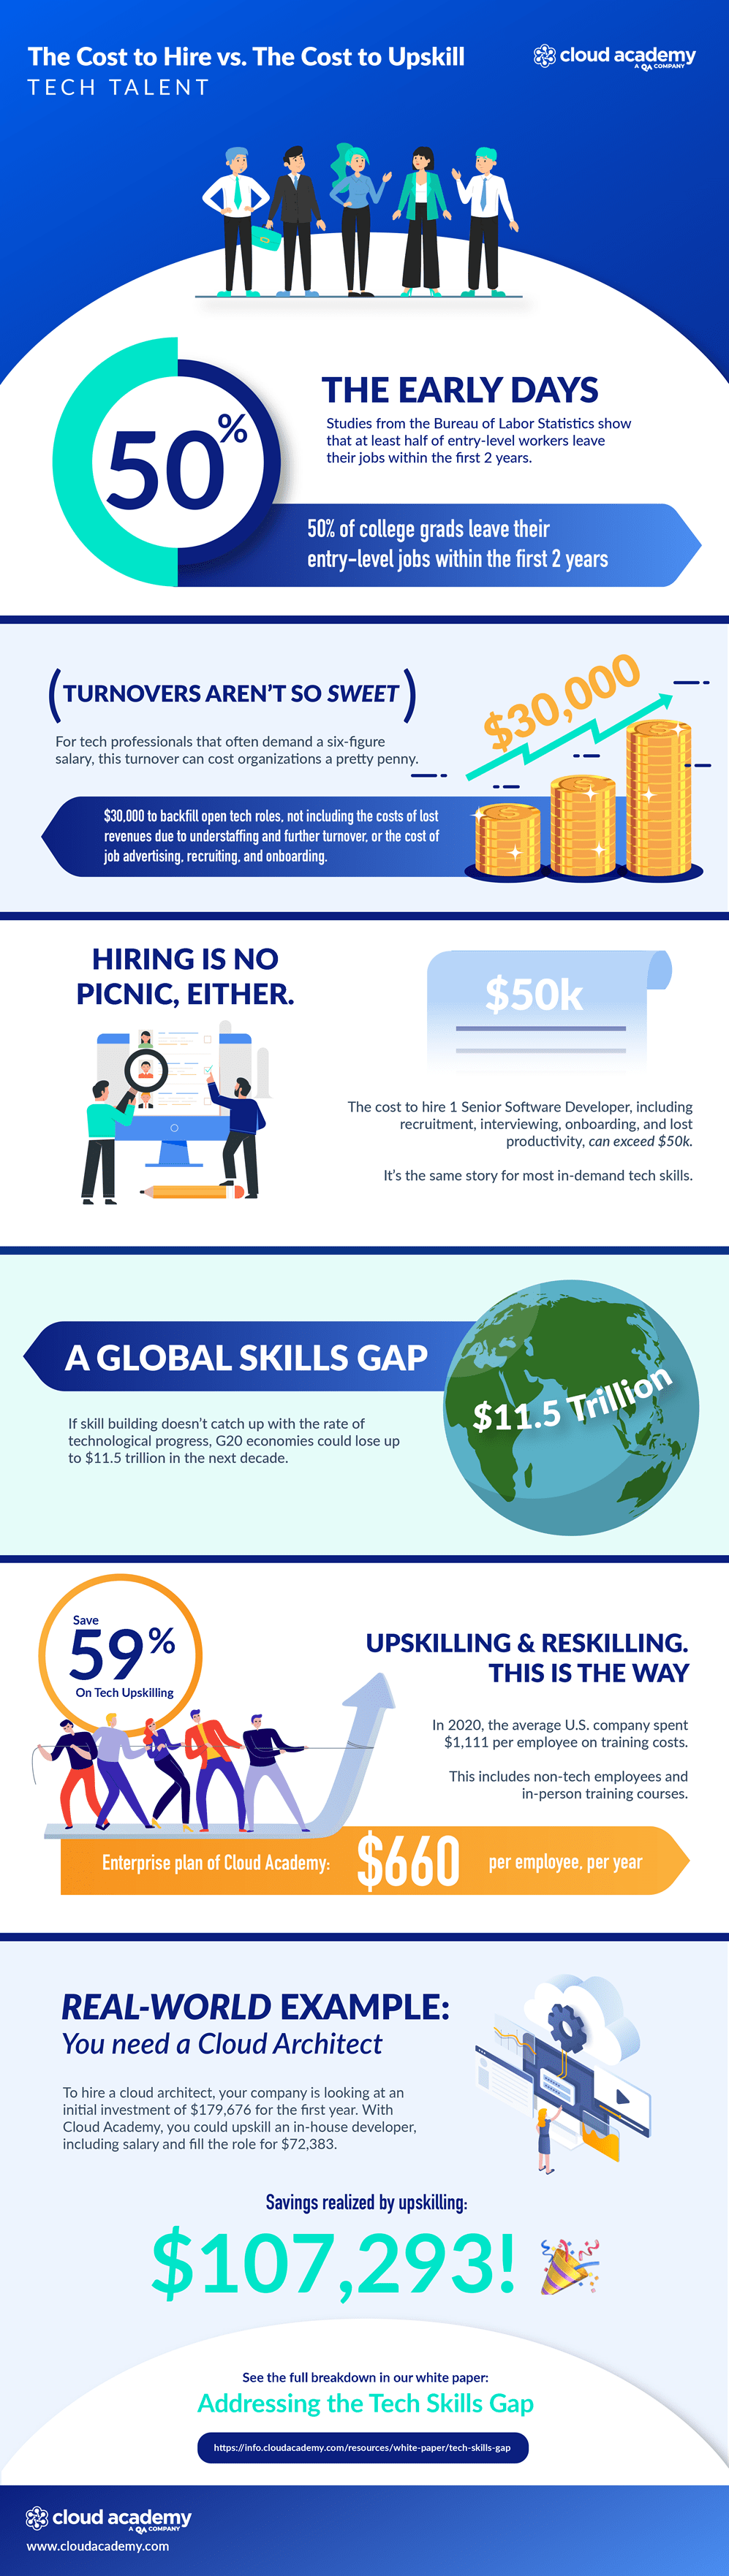 The Cost to Hire vs The Cost to Upskill Tech Talent